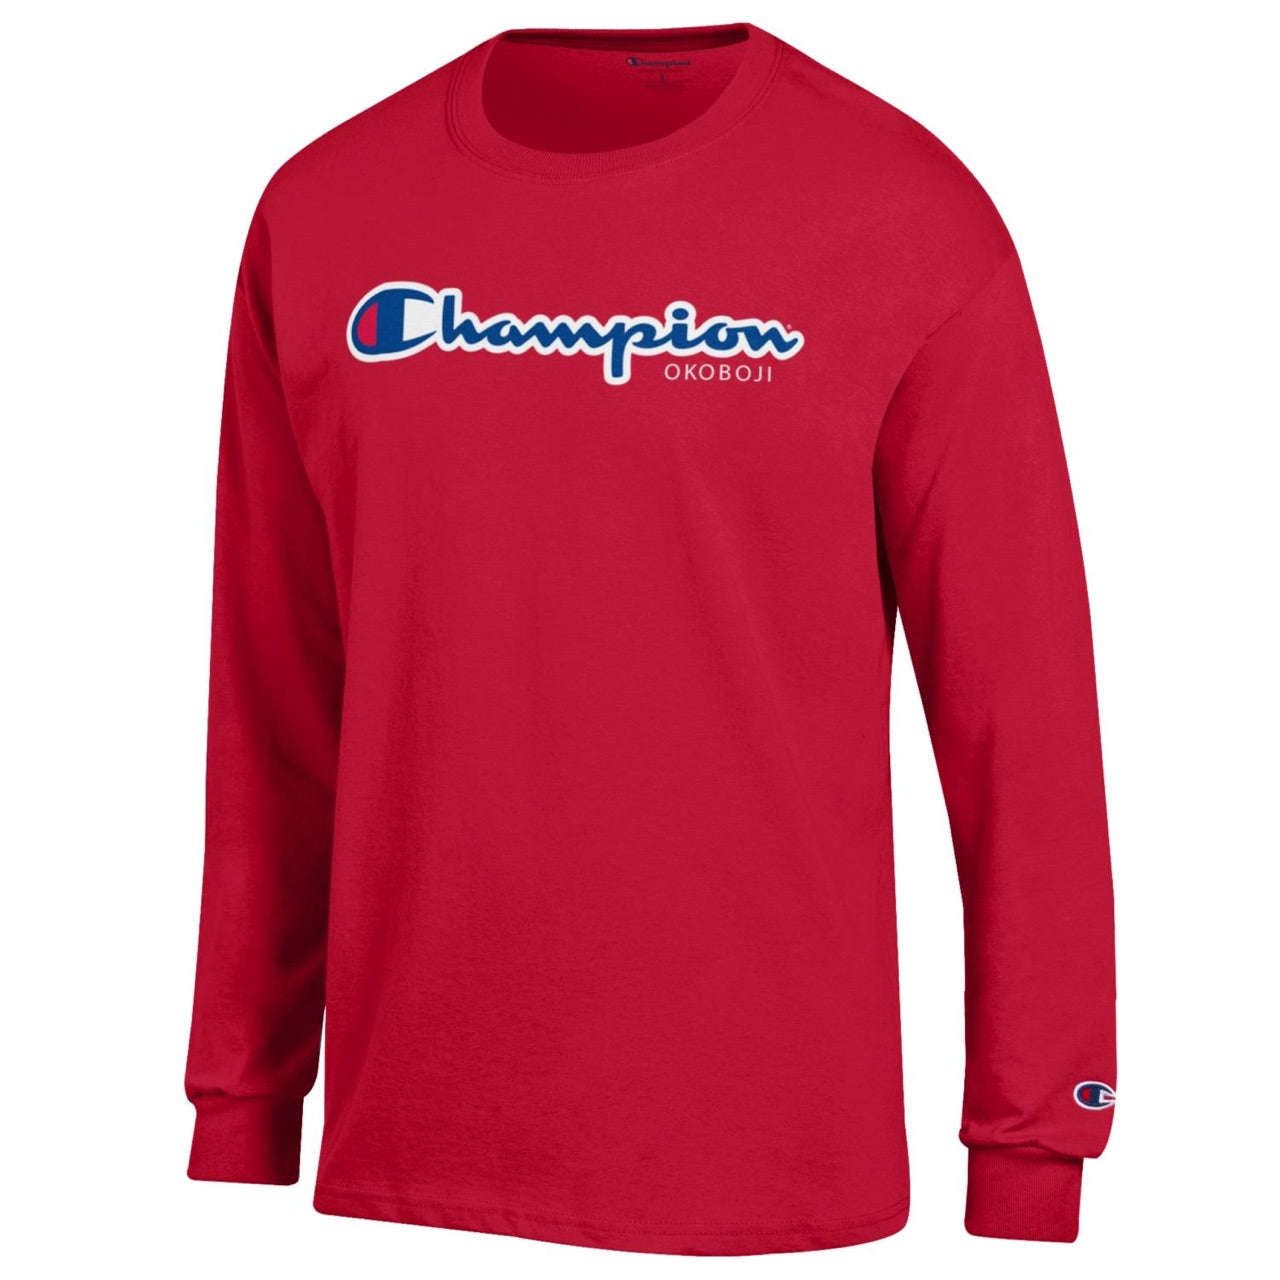 Champion® of Okoboji Long Sleeve - Really Red